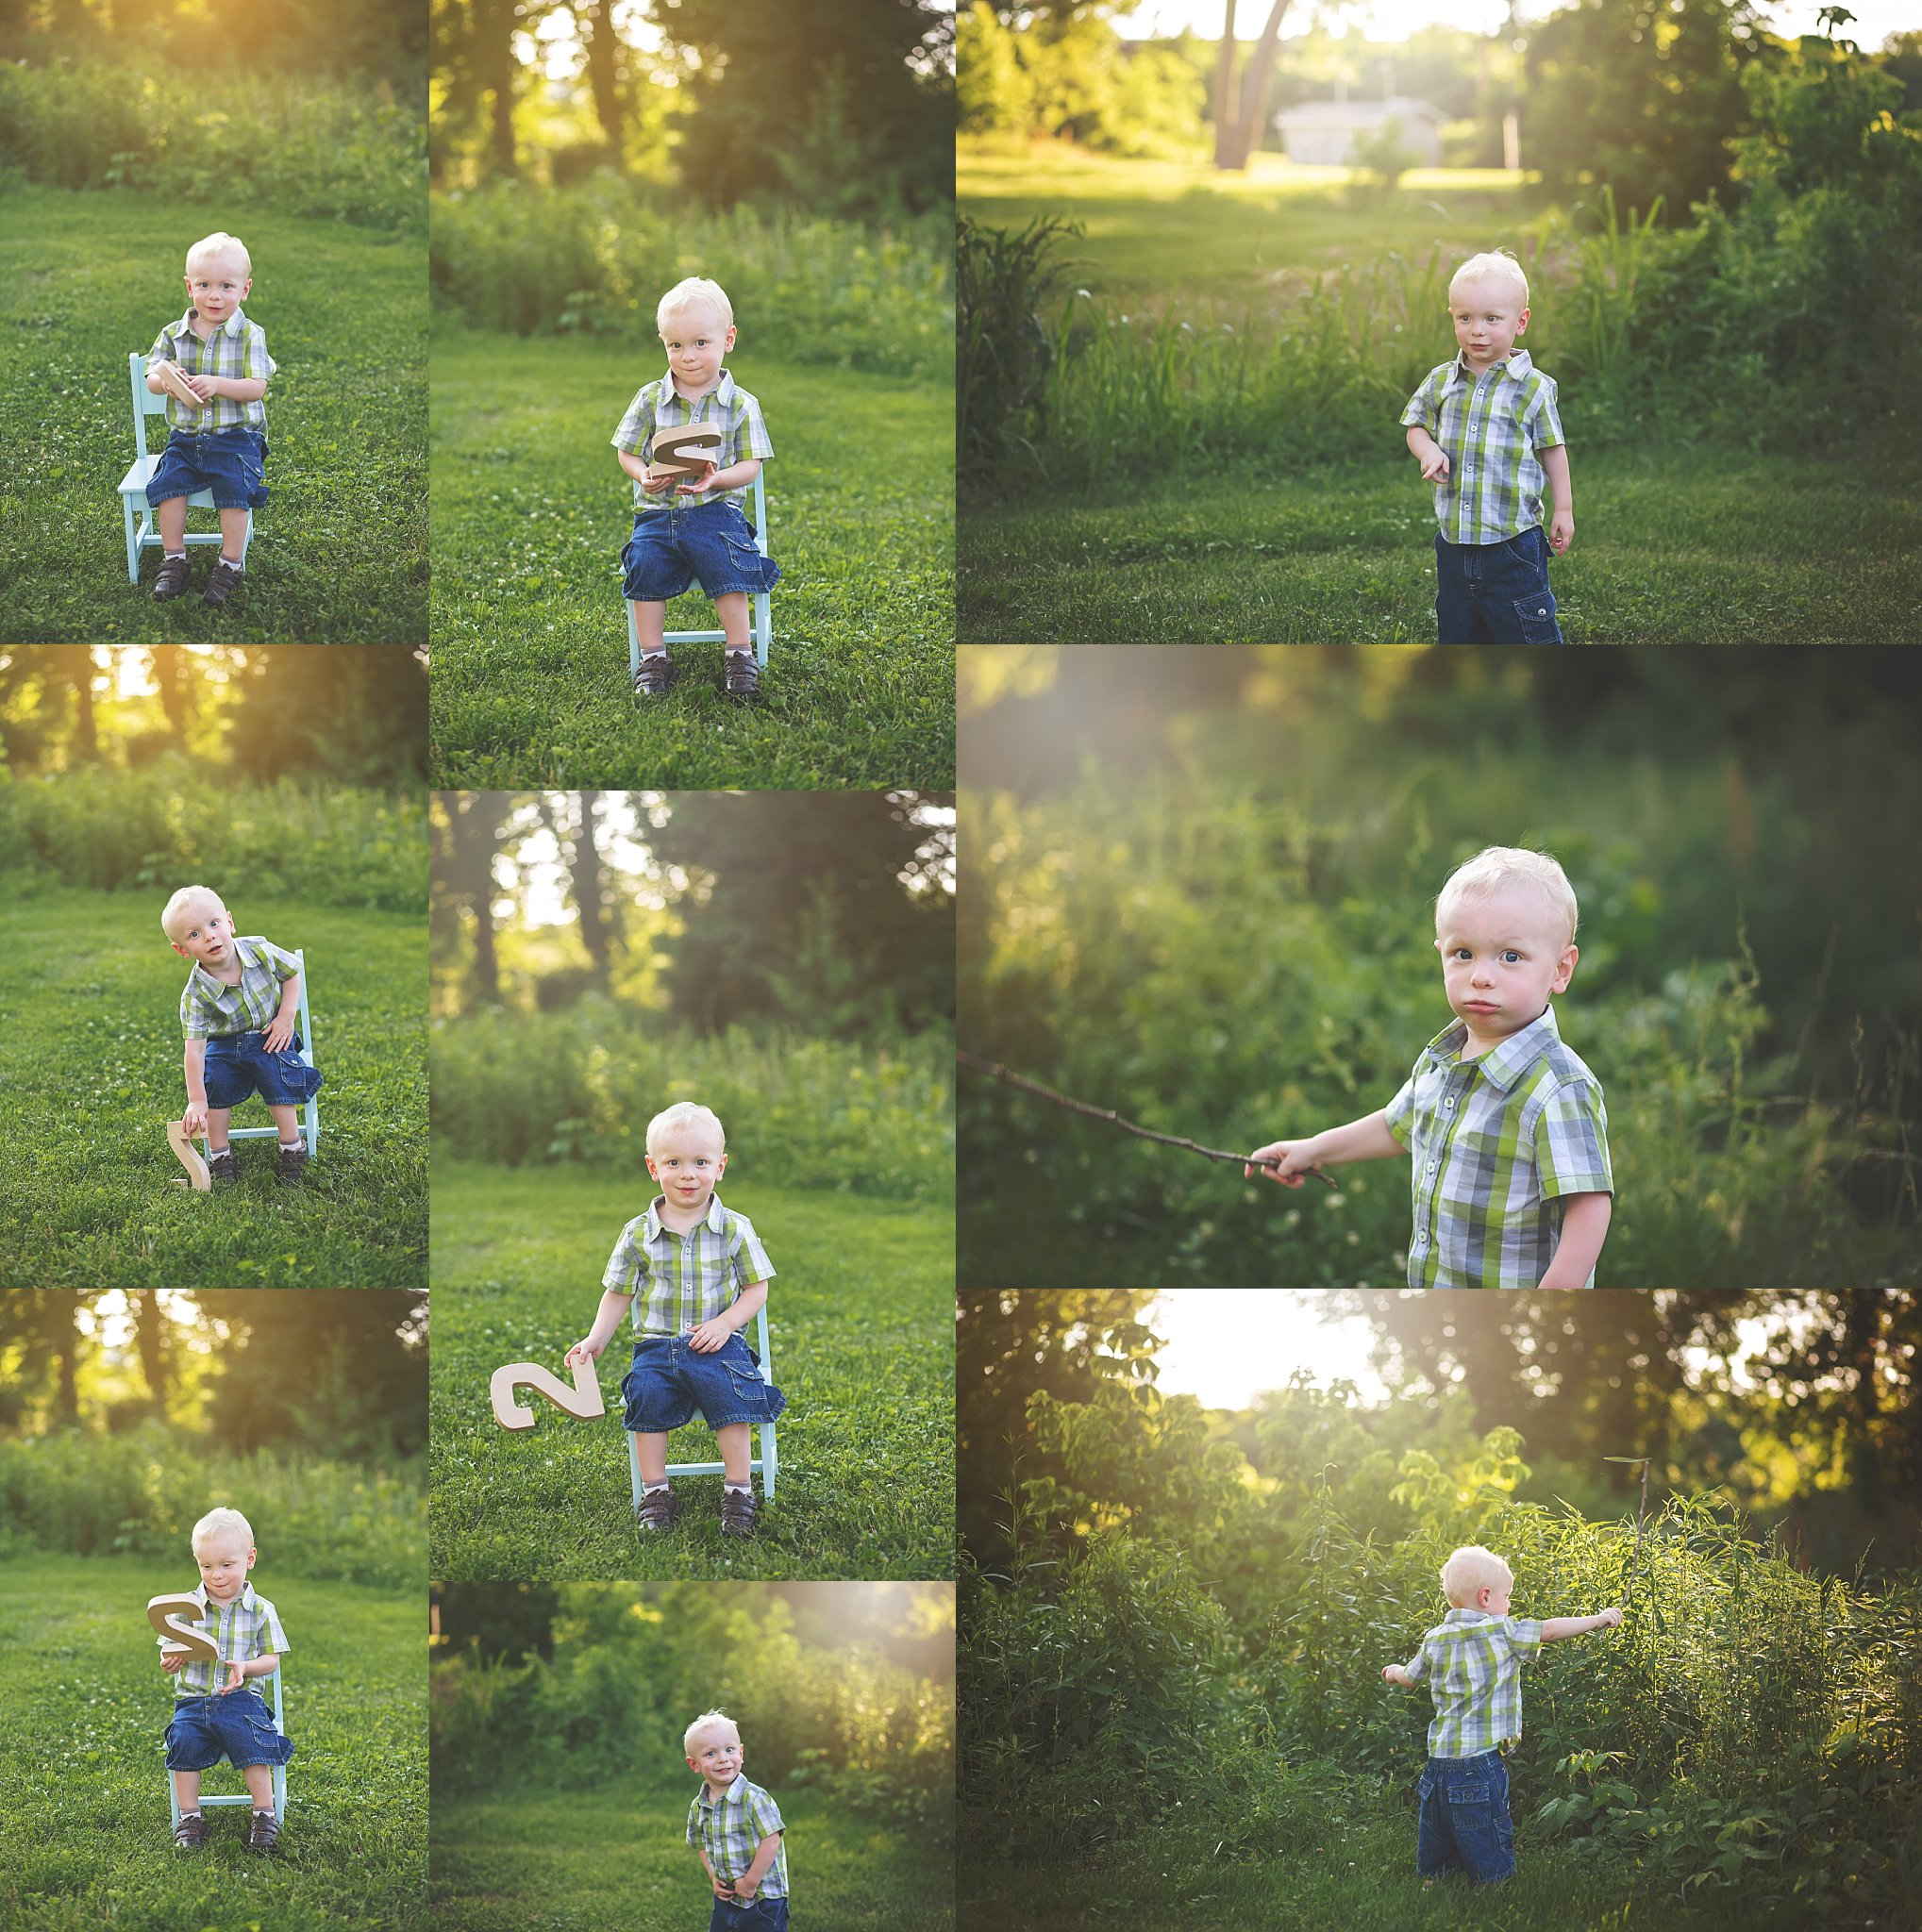 Two Year Old Portraits Outdoors | Cheryl Logan Photography